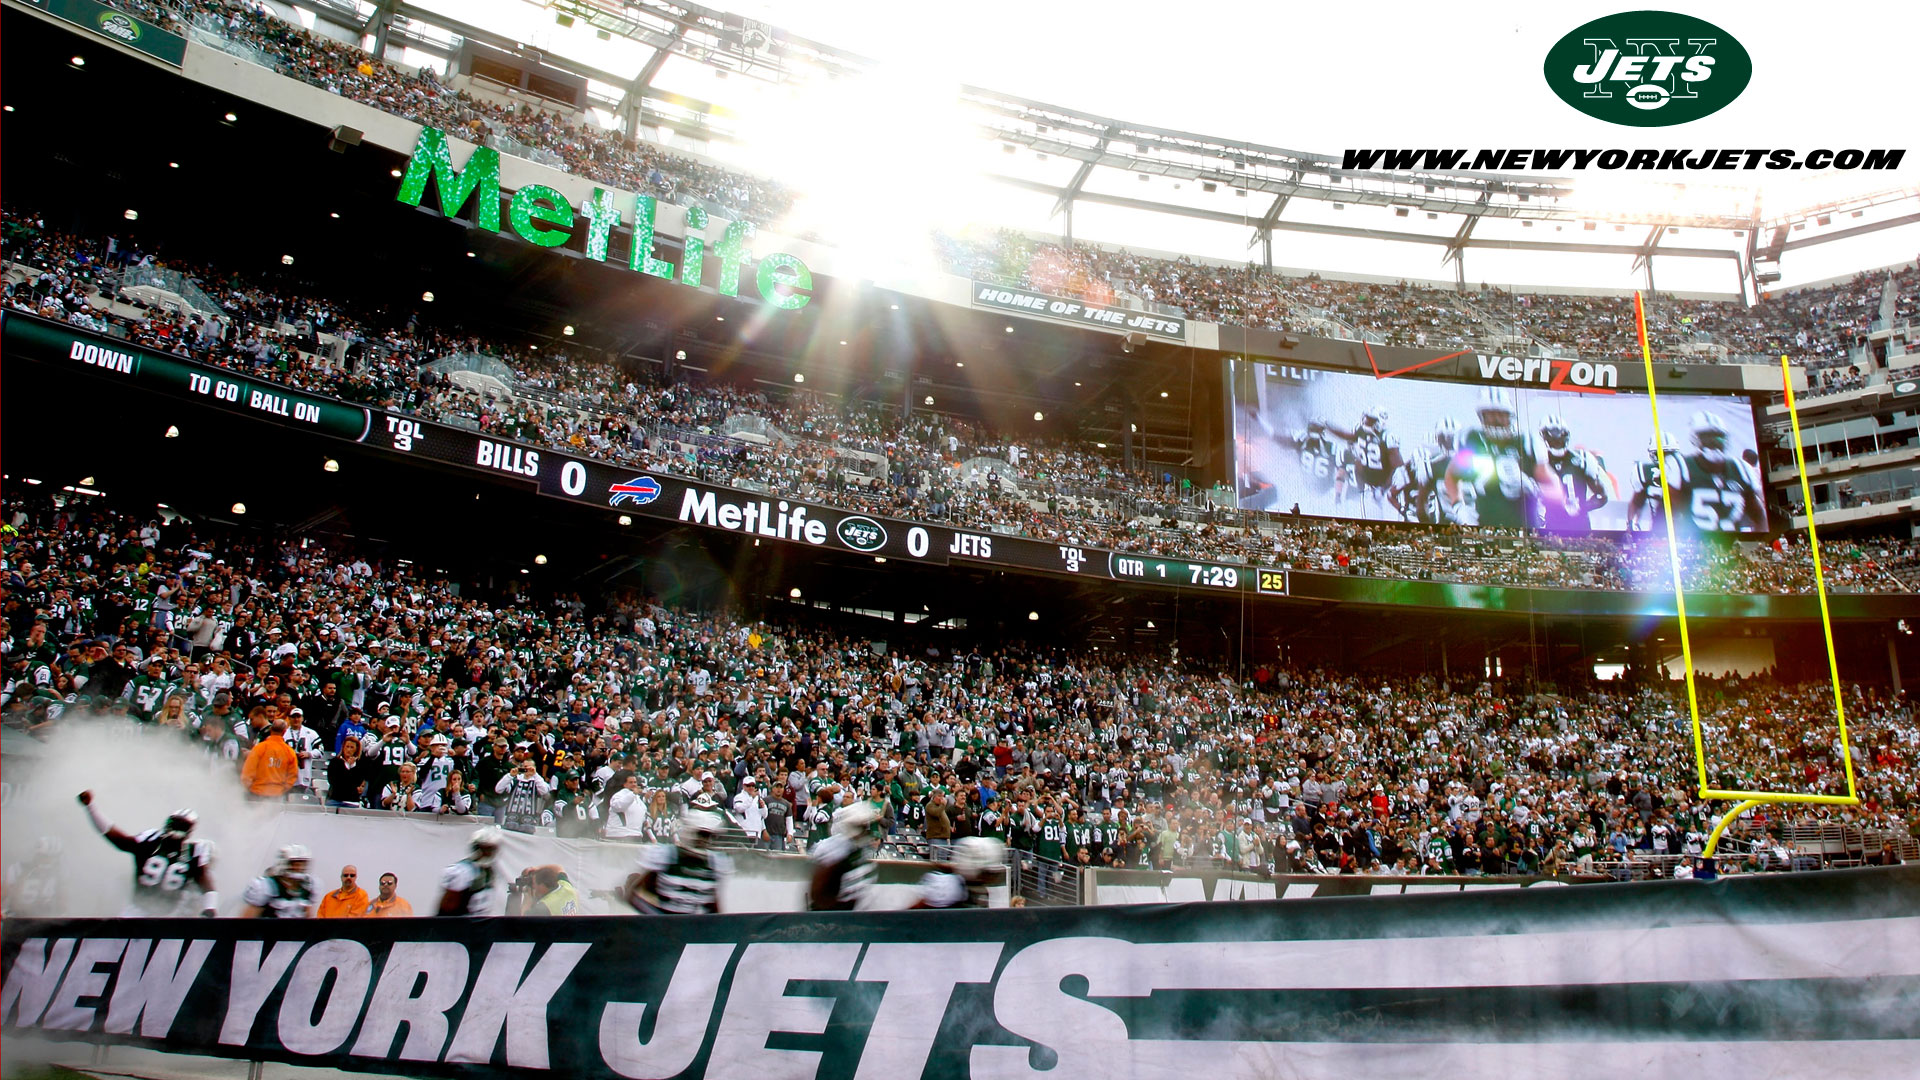 New York Jets Stadium Wallpaper Desktop Hd Backgrounds Hd Screensavers 1920x1080